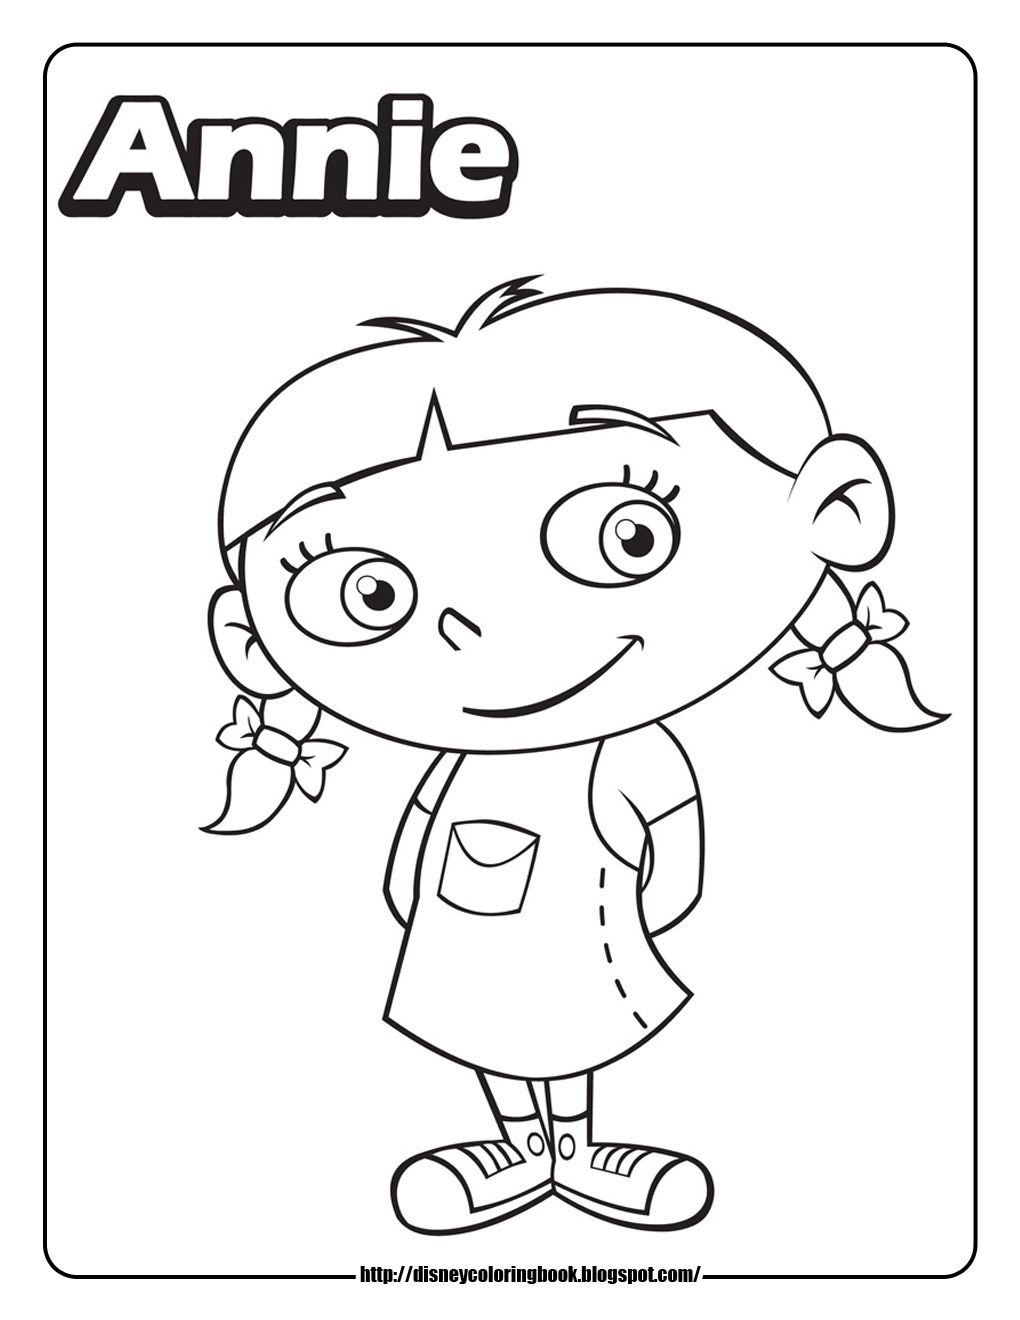 1020x1320 Little Einsteins Coloring Pages Annie Coloring Pages